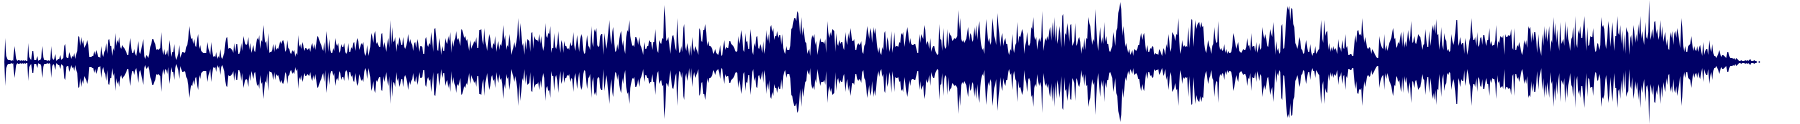 waveform of track #70631